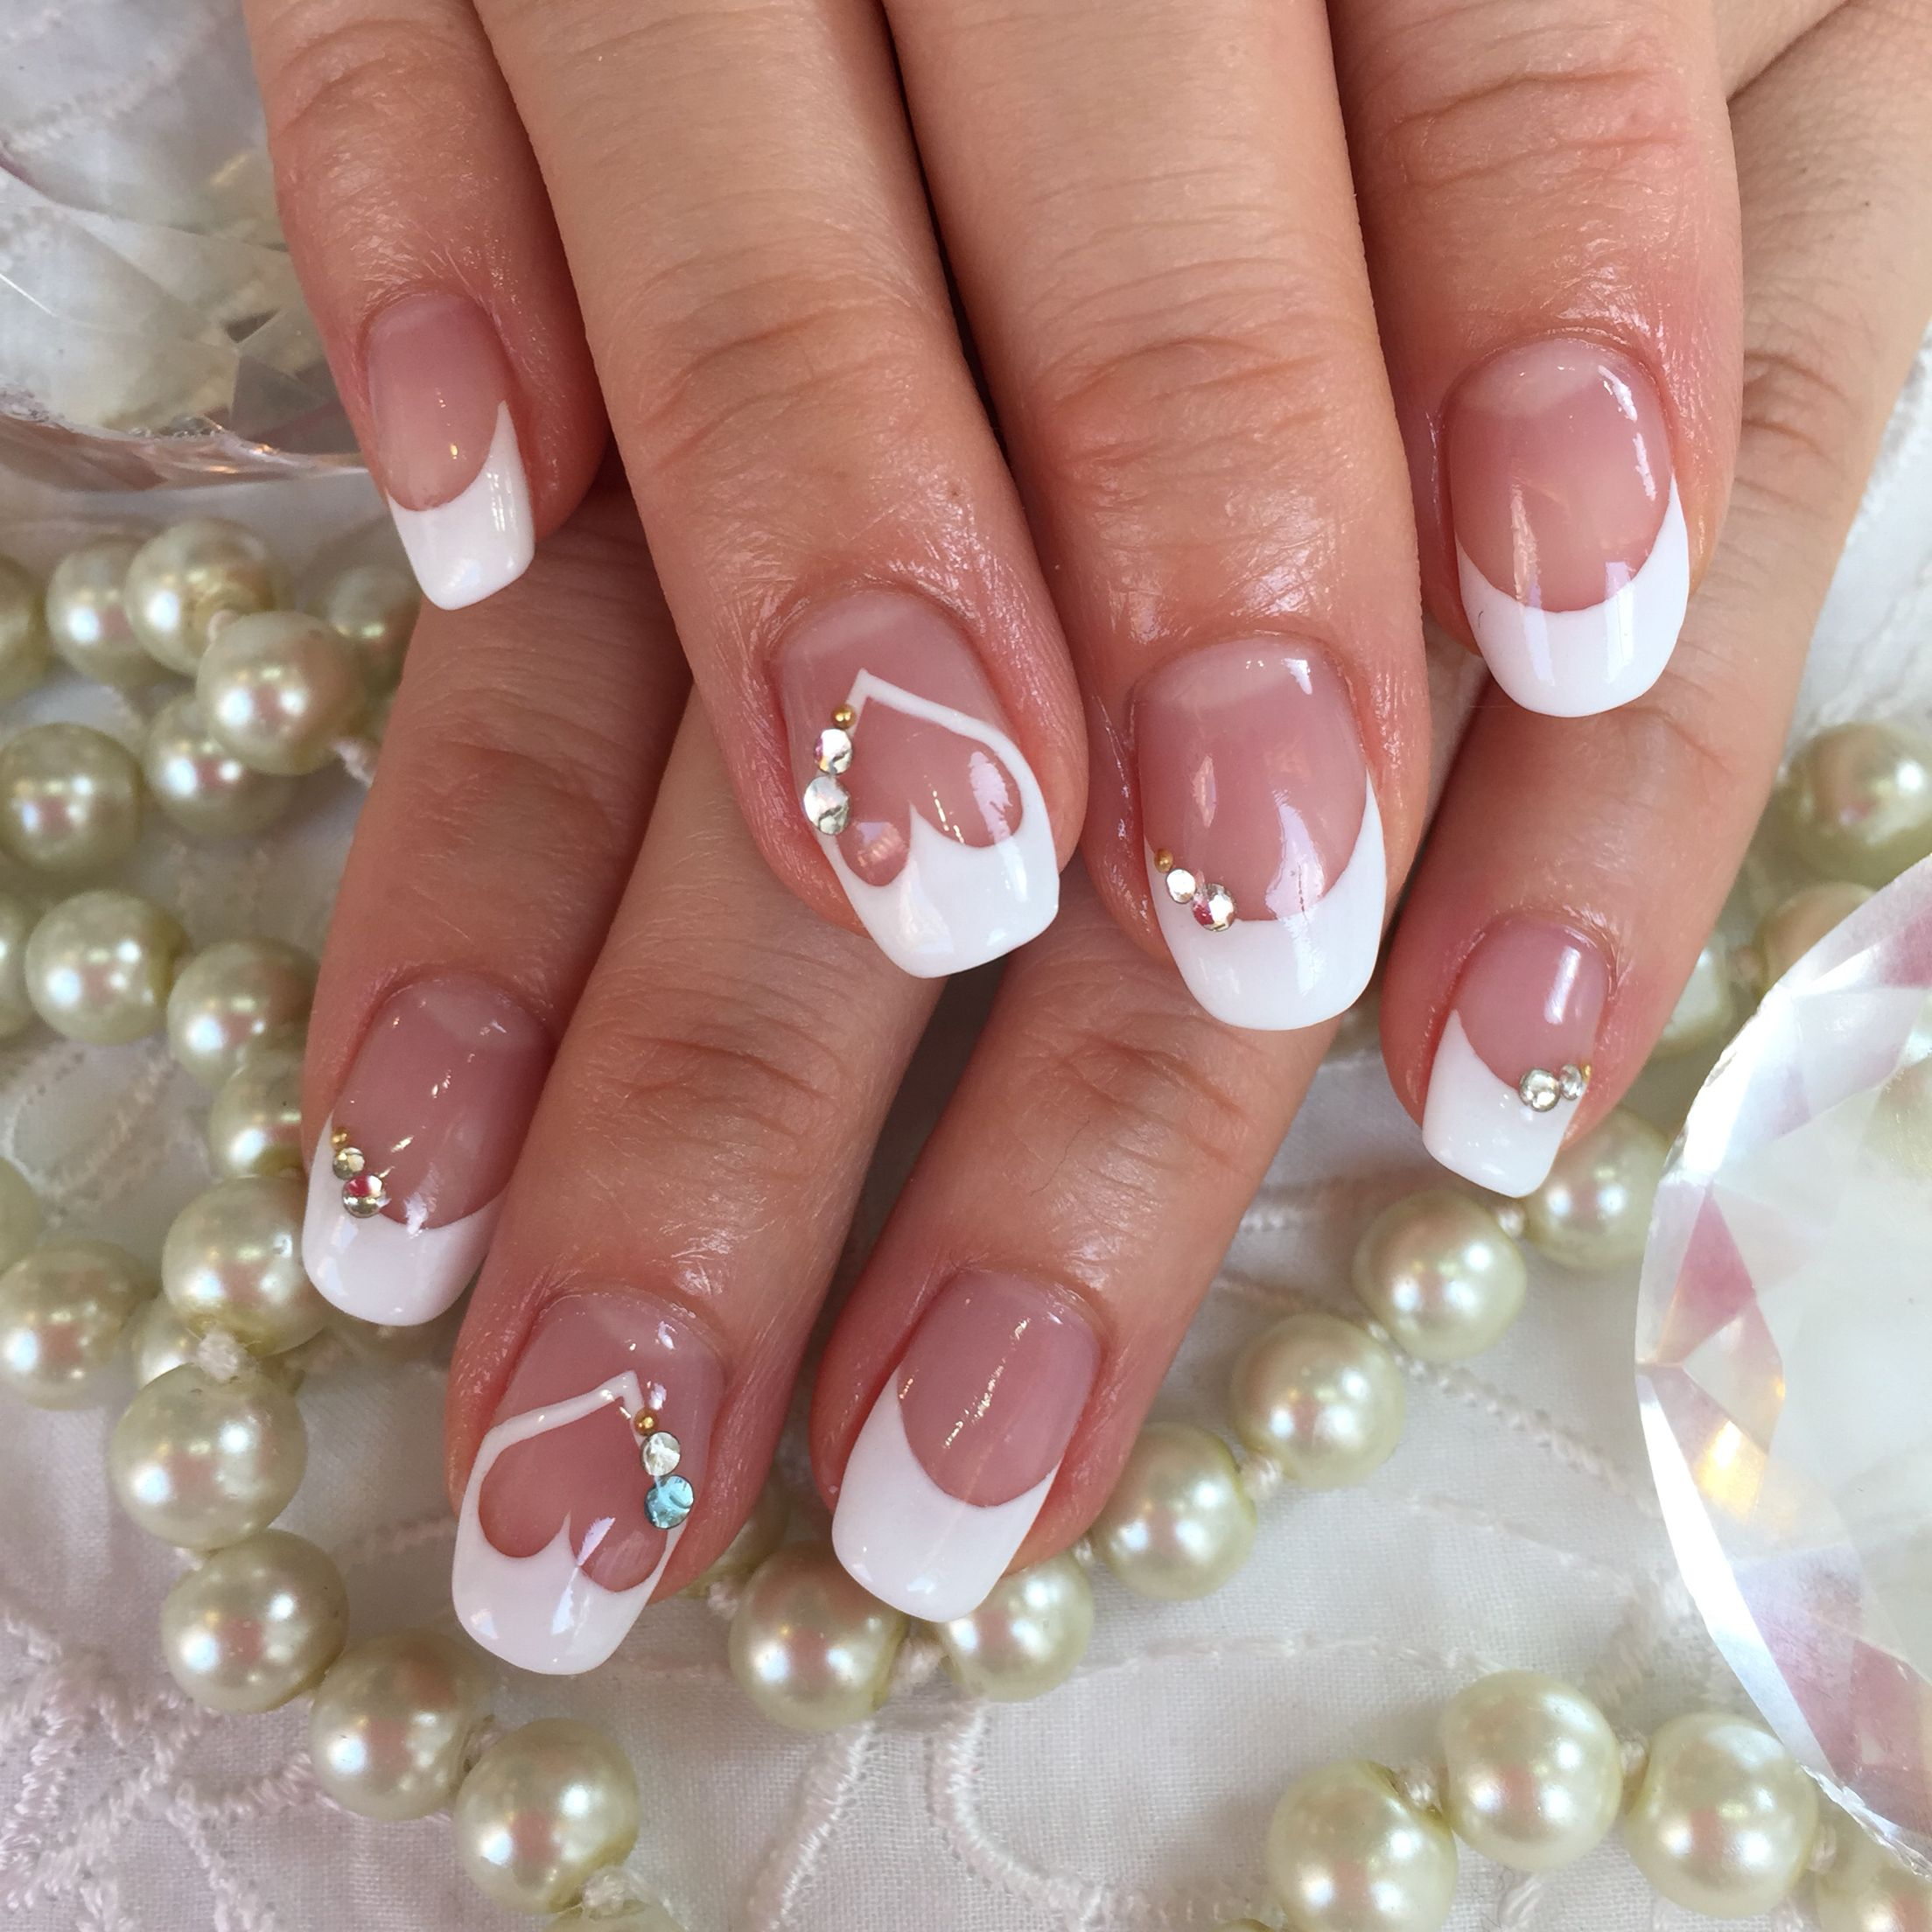 24 Lovely French Nail Art Designs Suited for Any Occasion ...